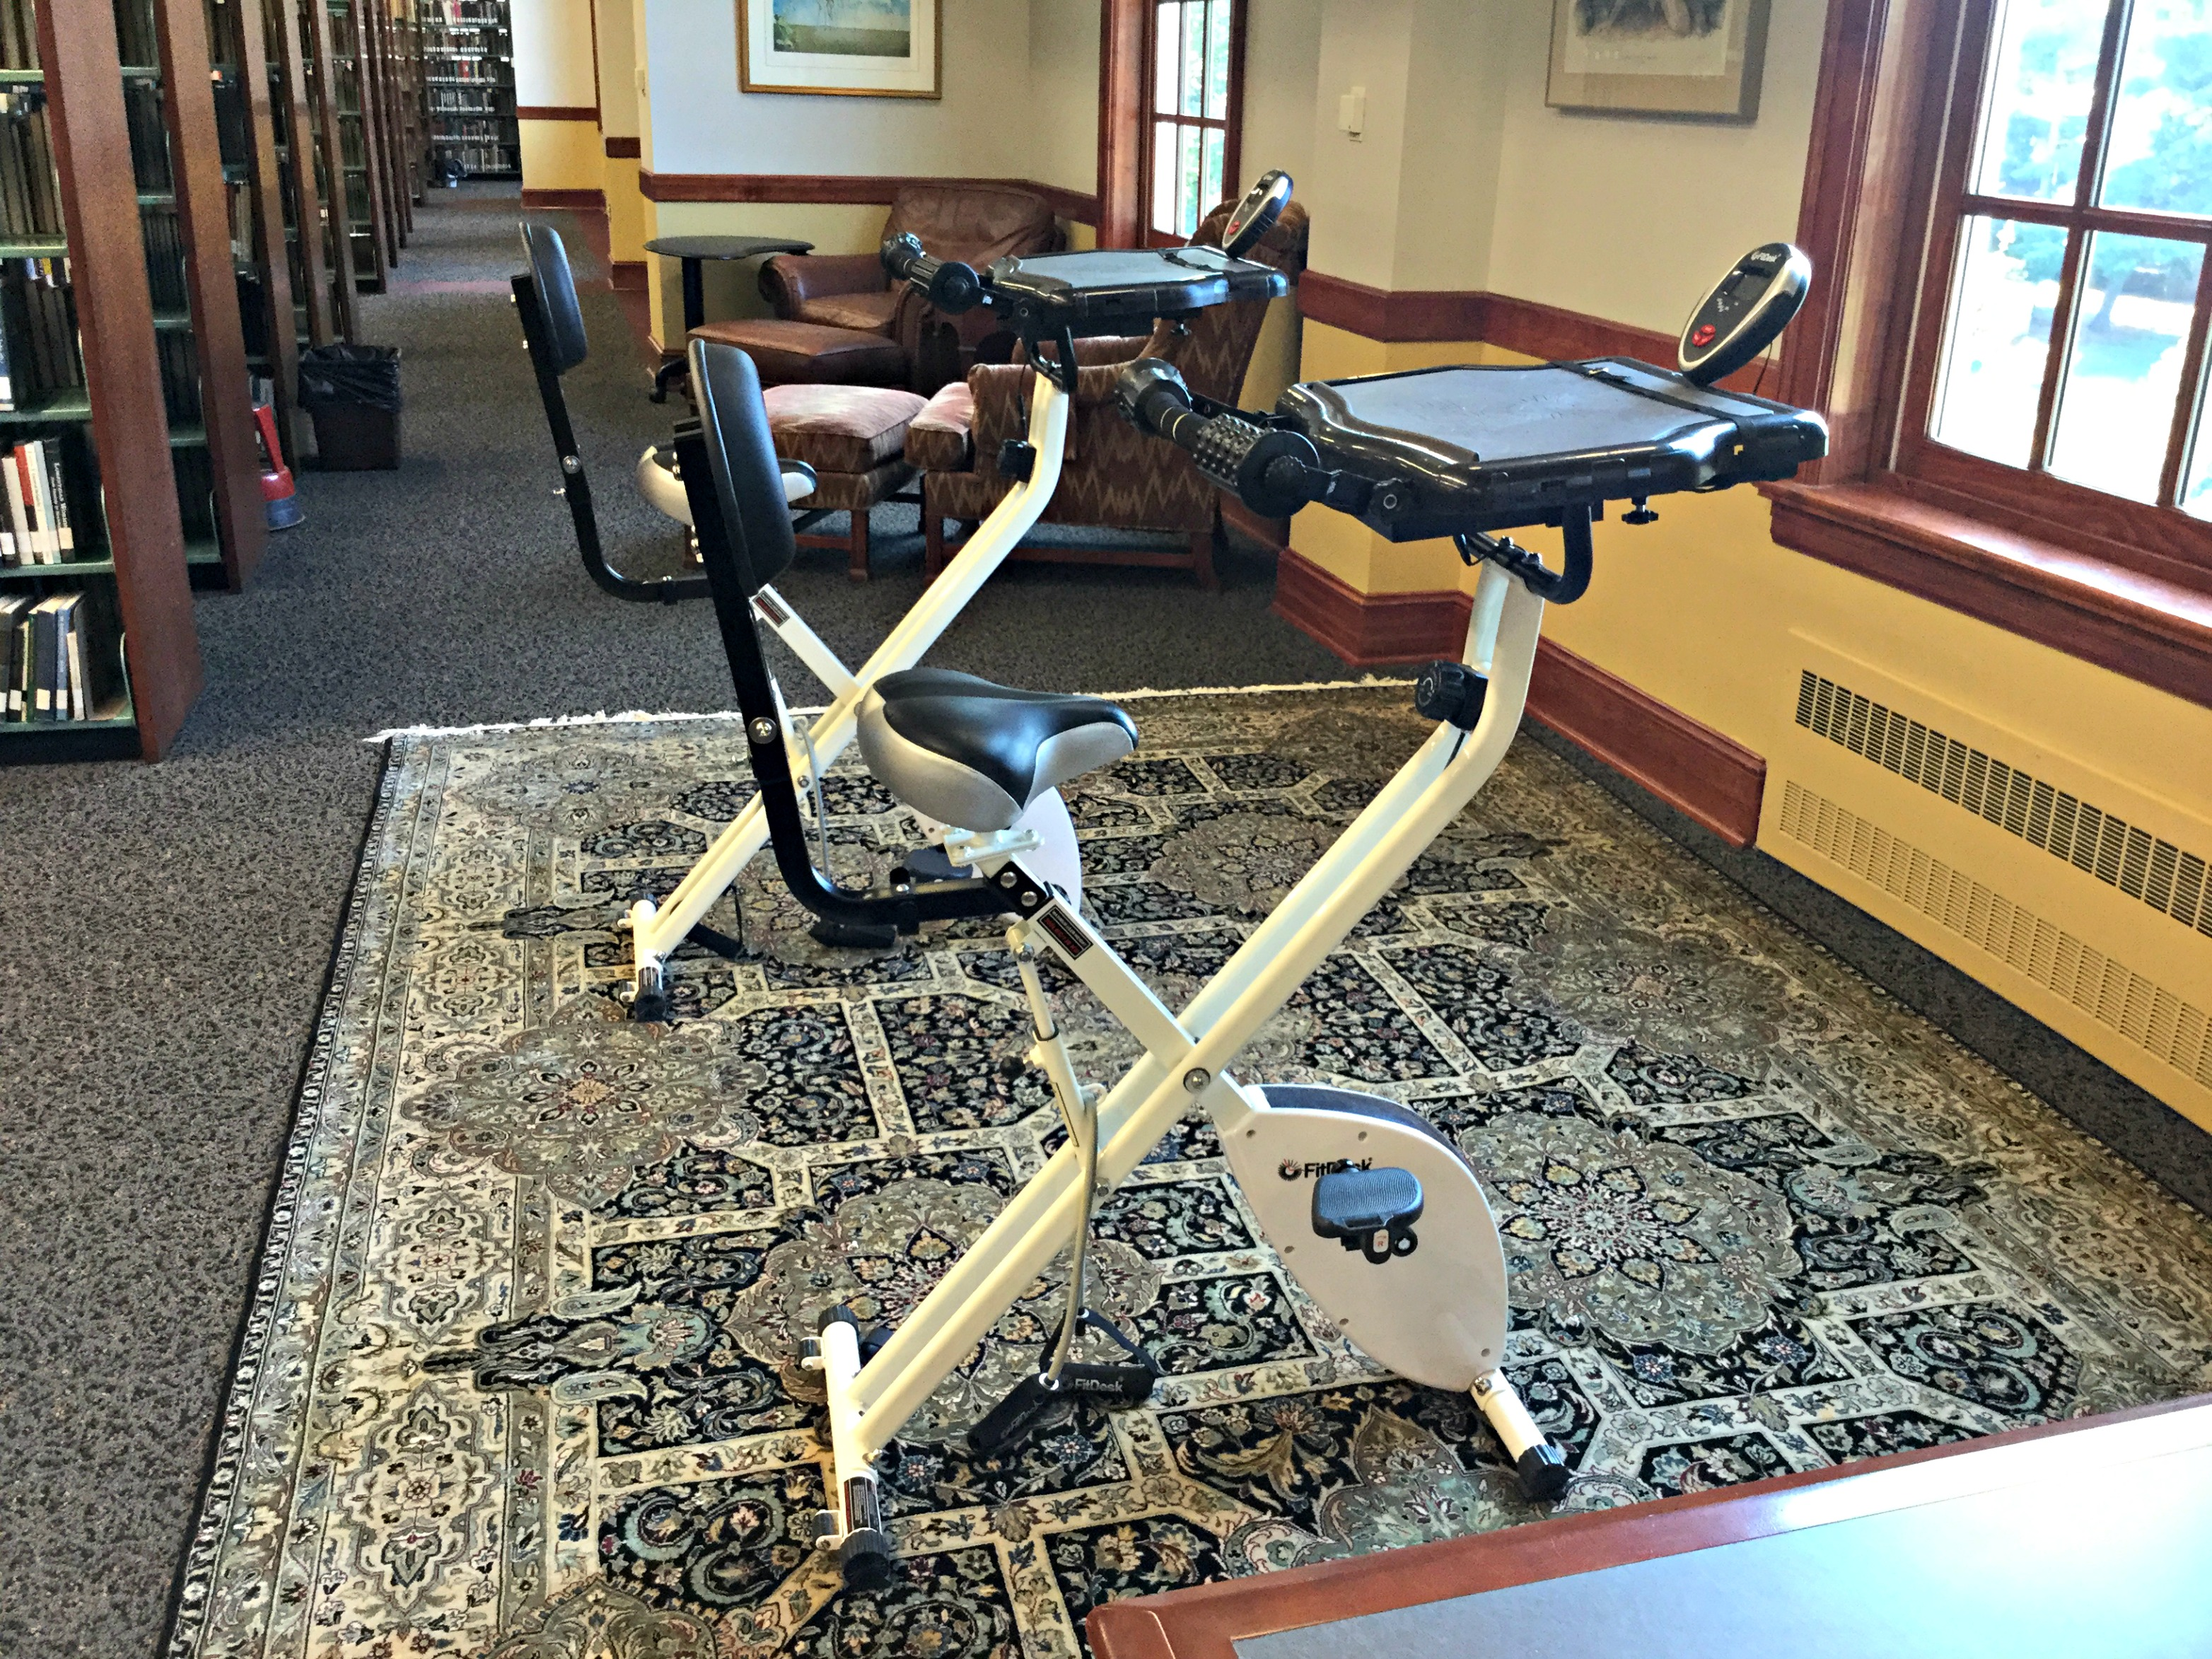 Fit desks in the Library